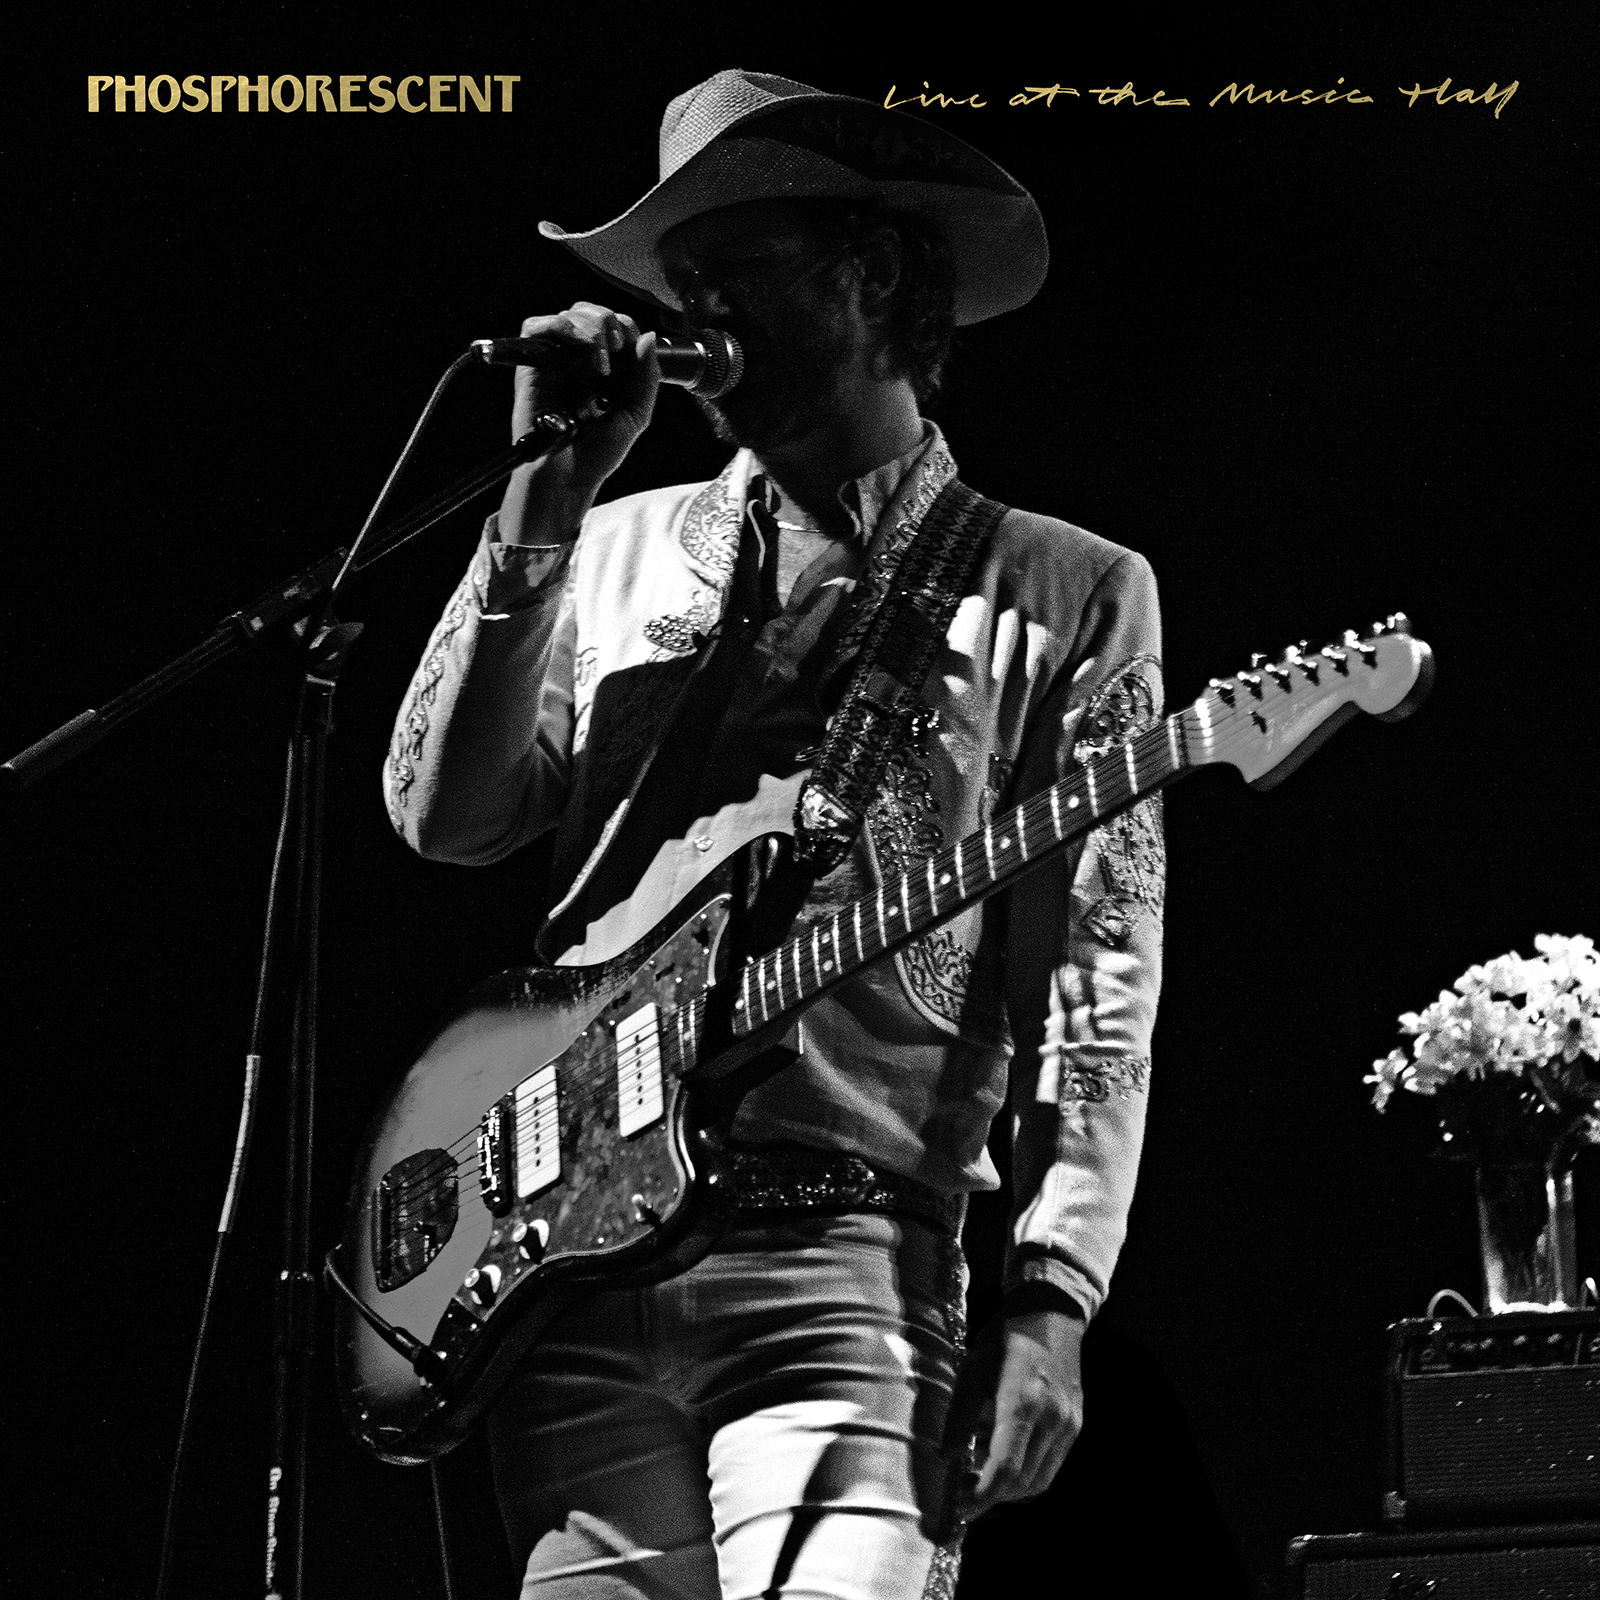 Hear Phosphorescent&#8217;s &#8220;Los Angeles&#8221; From New <em>Live At The Music Hall</em> LP